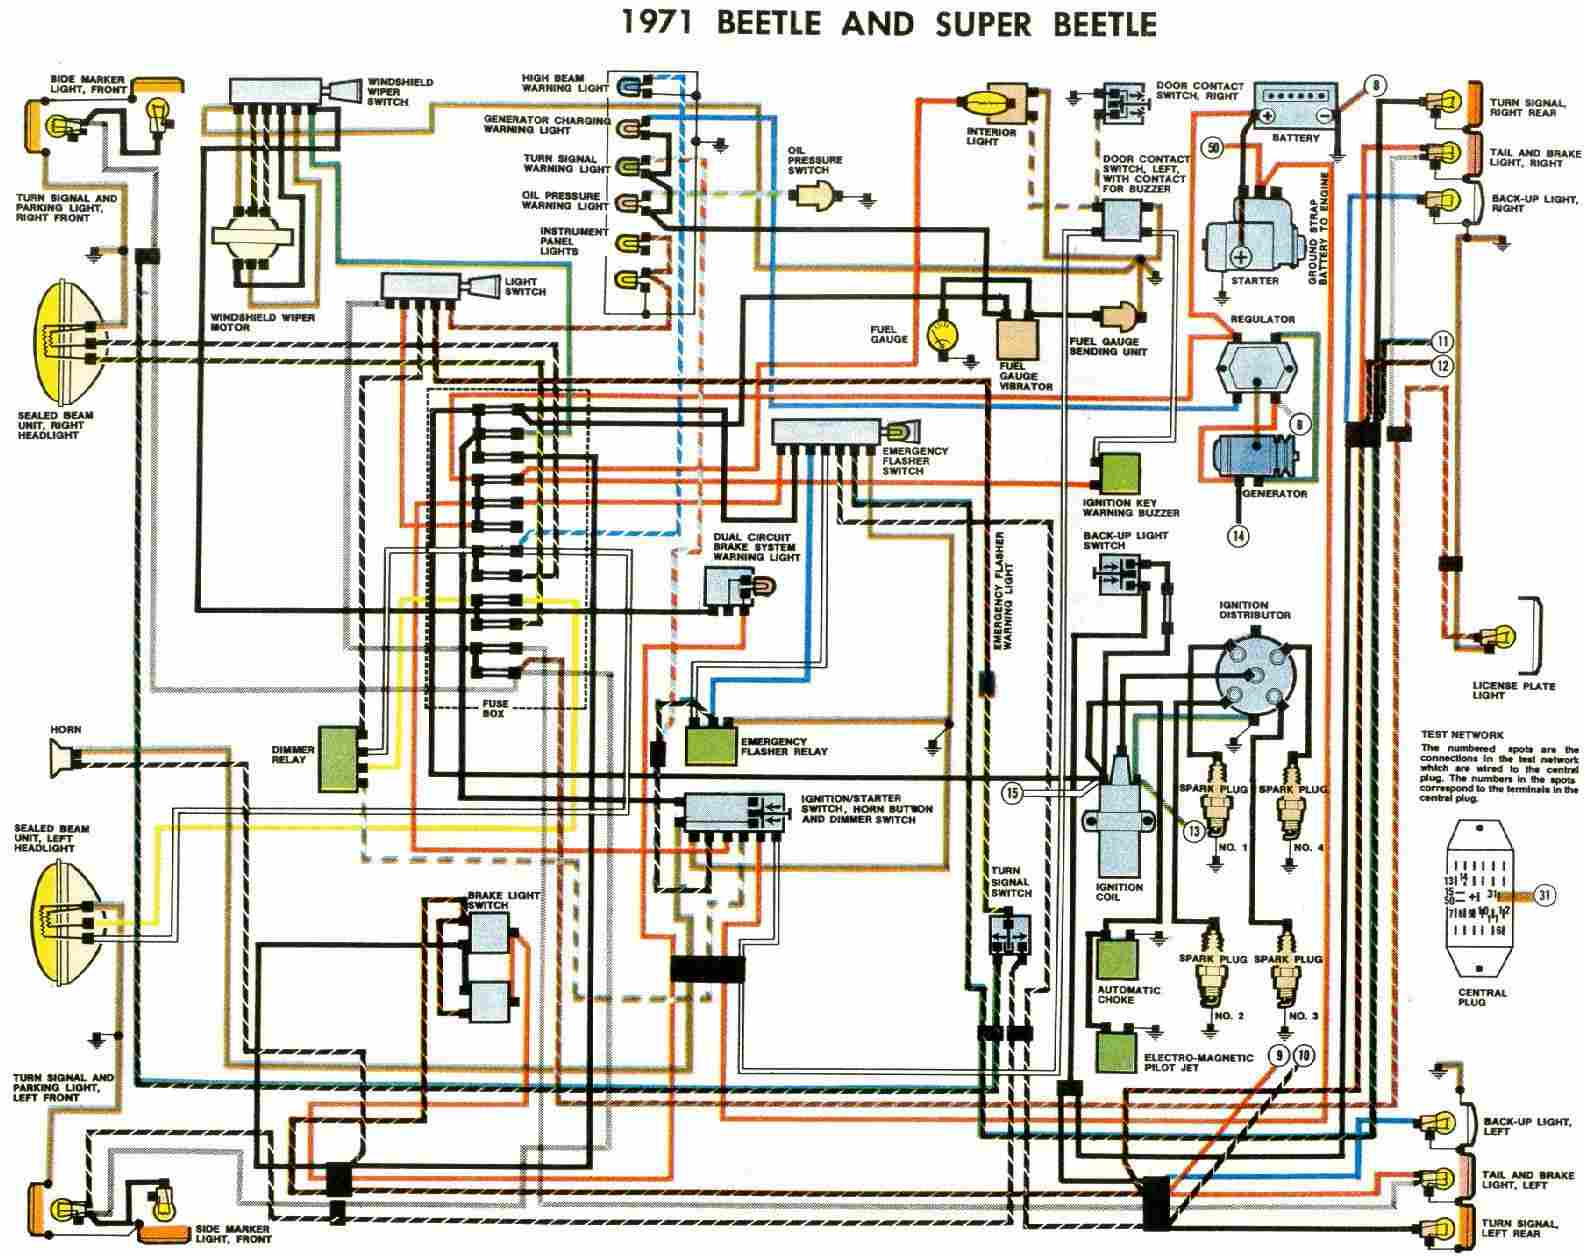 VW+Beetle+and+Super+Beetle+1971+Electrical+Wiring+Diagram pdf] wiring diagrams volkswagen (28 pages) 74 beetle fuse box wiring diagrams for free at webbmarketing.co